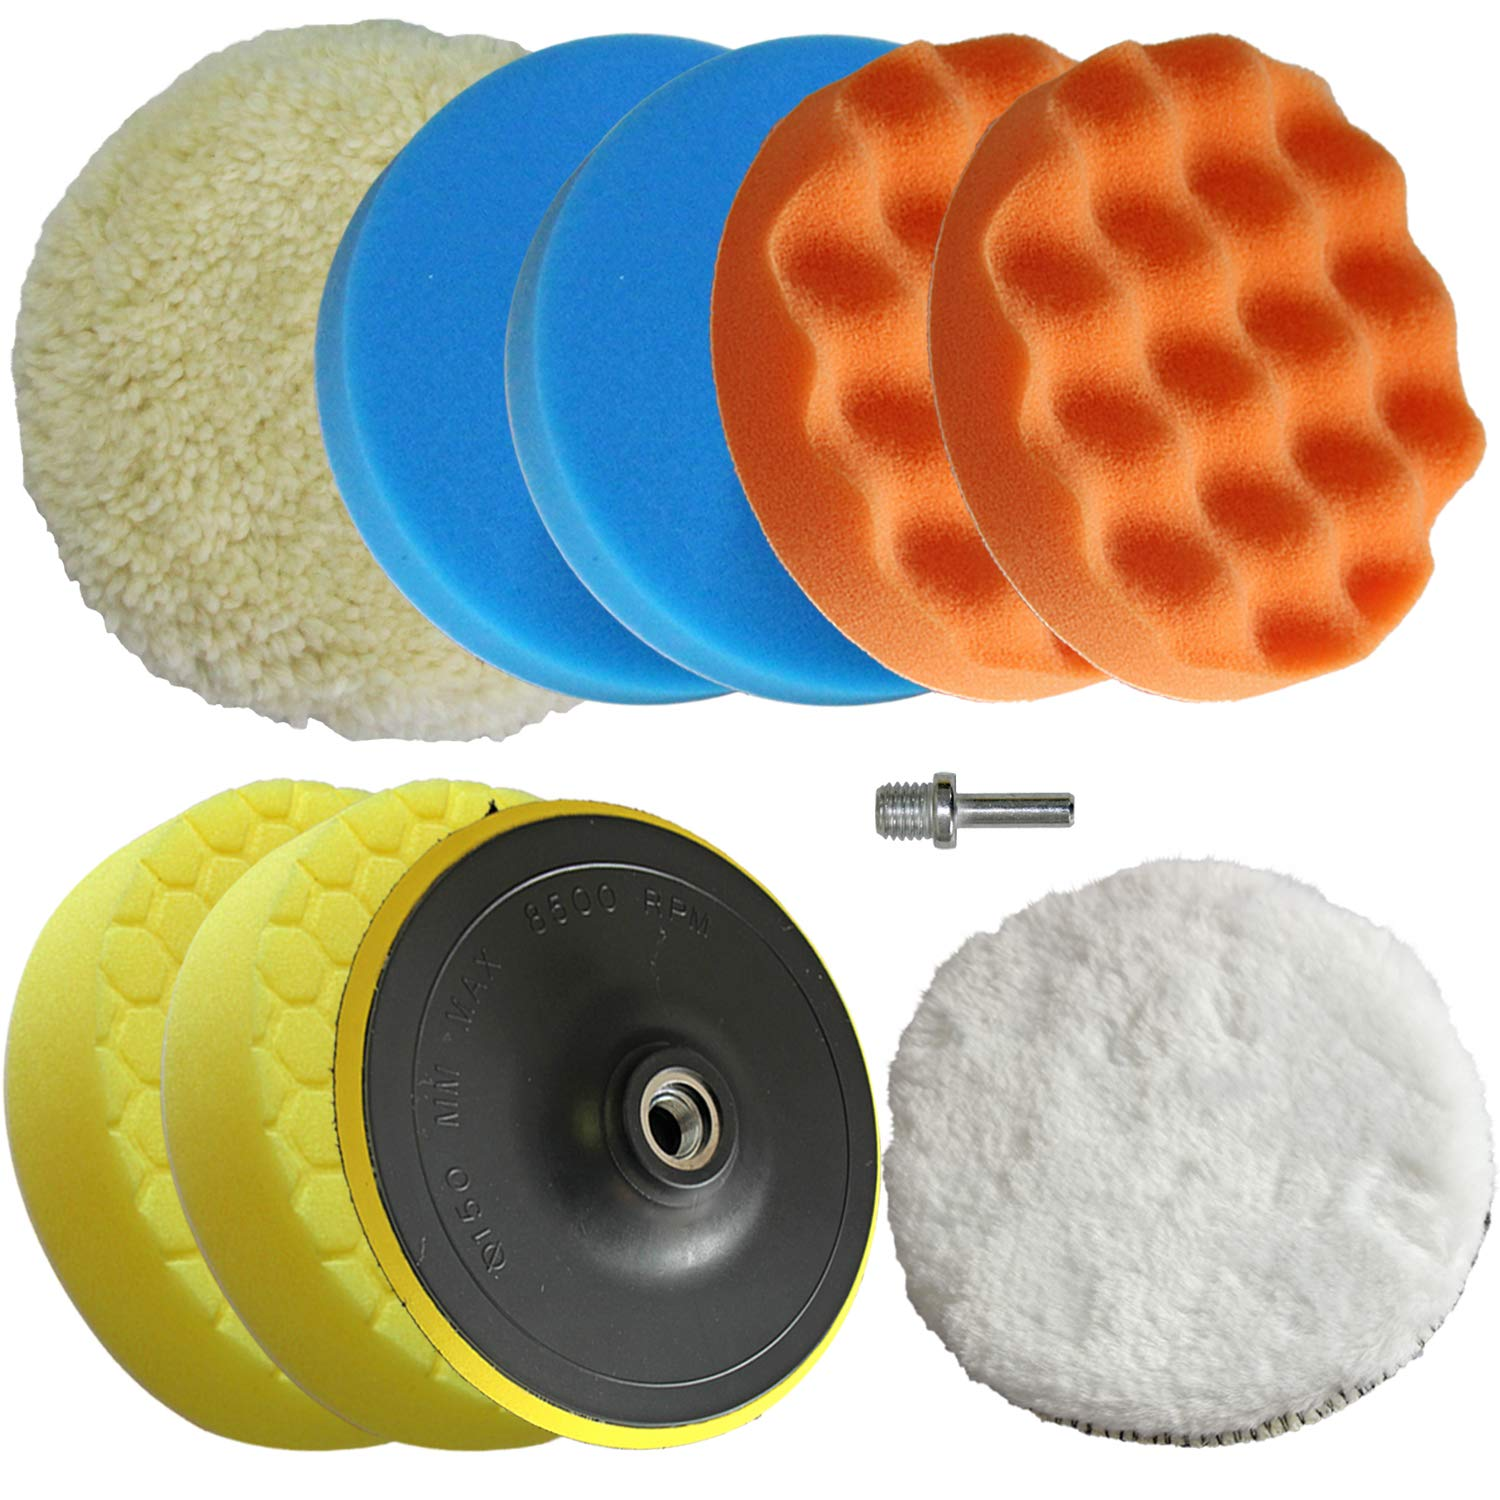 Polishing Pad Buffing Wheel Kit 10PCS with Waffle Foam & Lambs Wool Hook and 6inch Polishing Buffer Wool with M14 Drill Adapter Fit for Metal Aluminum Stainless Steel Chrome Wood Plastic Glass etc by Medoon (Image #1)